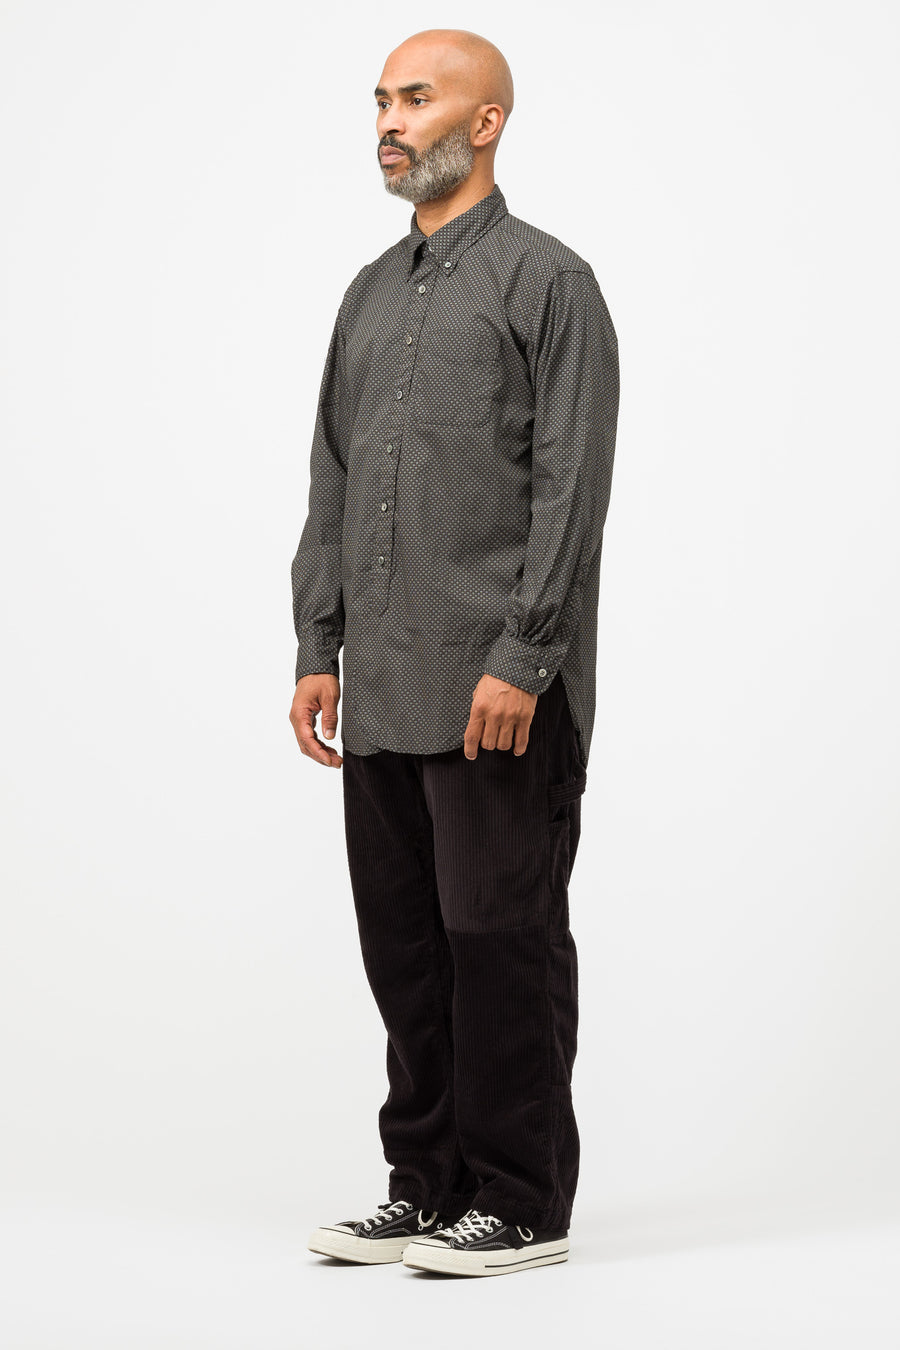 Engineered Garments 19 Century BD Shirt in Black Cotton Mini Foulard - Notre